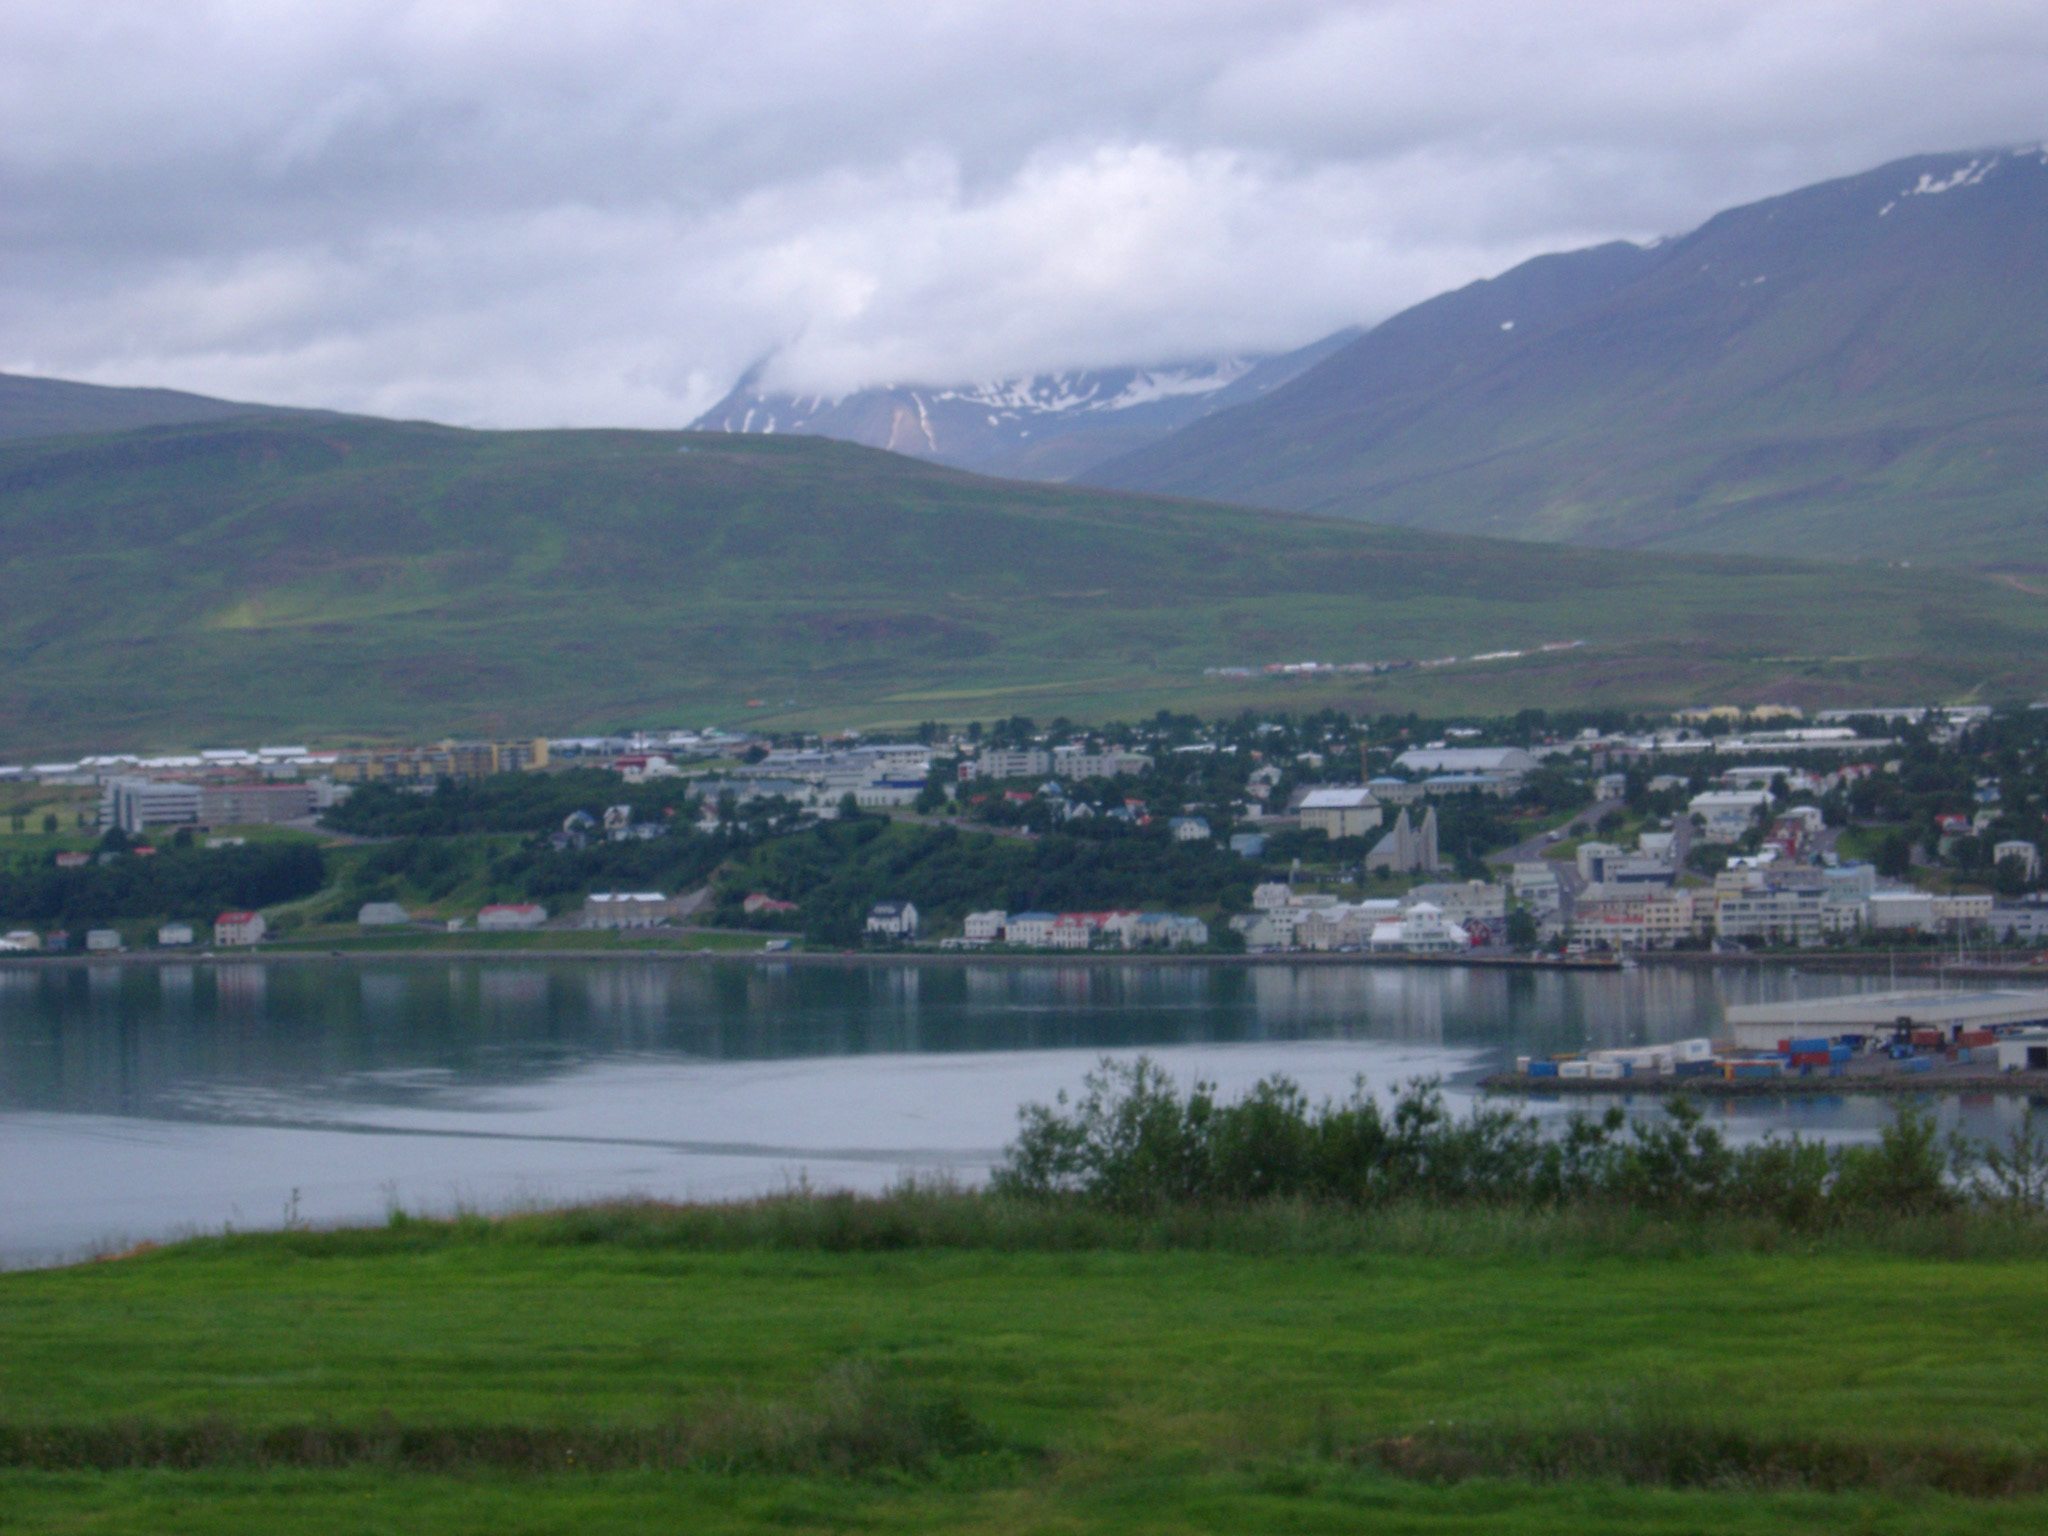 Town of Akureyri on Eyjafjorour Fjord with Overcast Sky and Mountains in the Distance